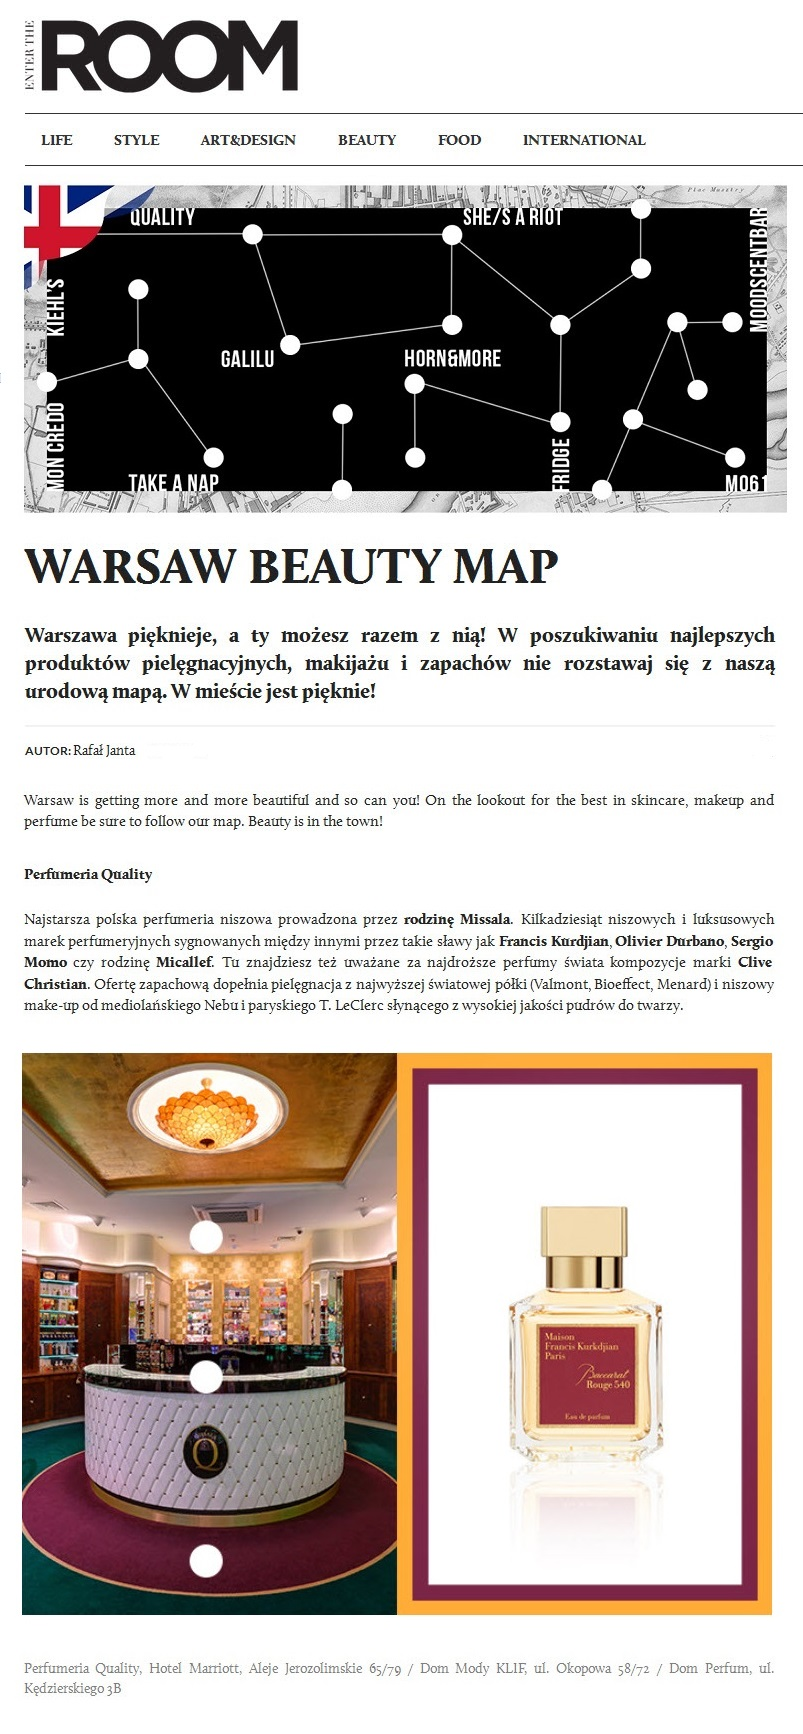 Warsaw Beauty Map